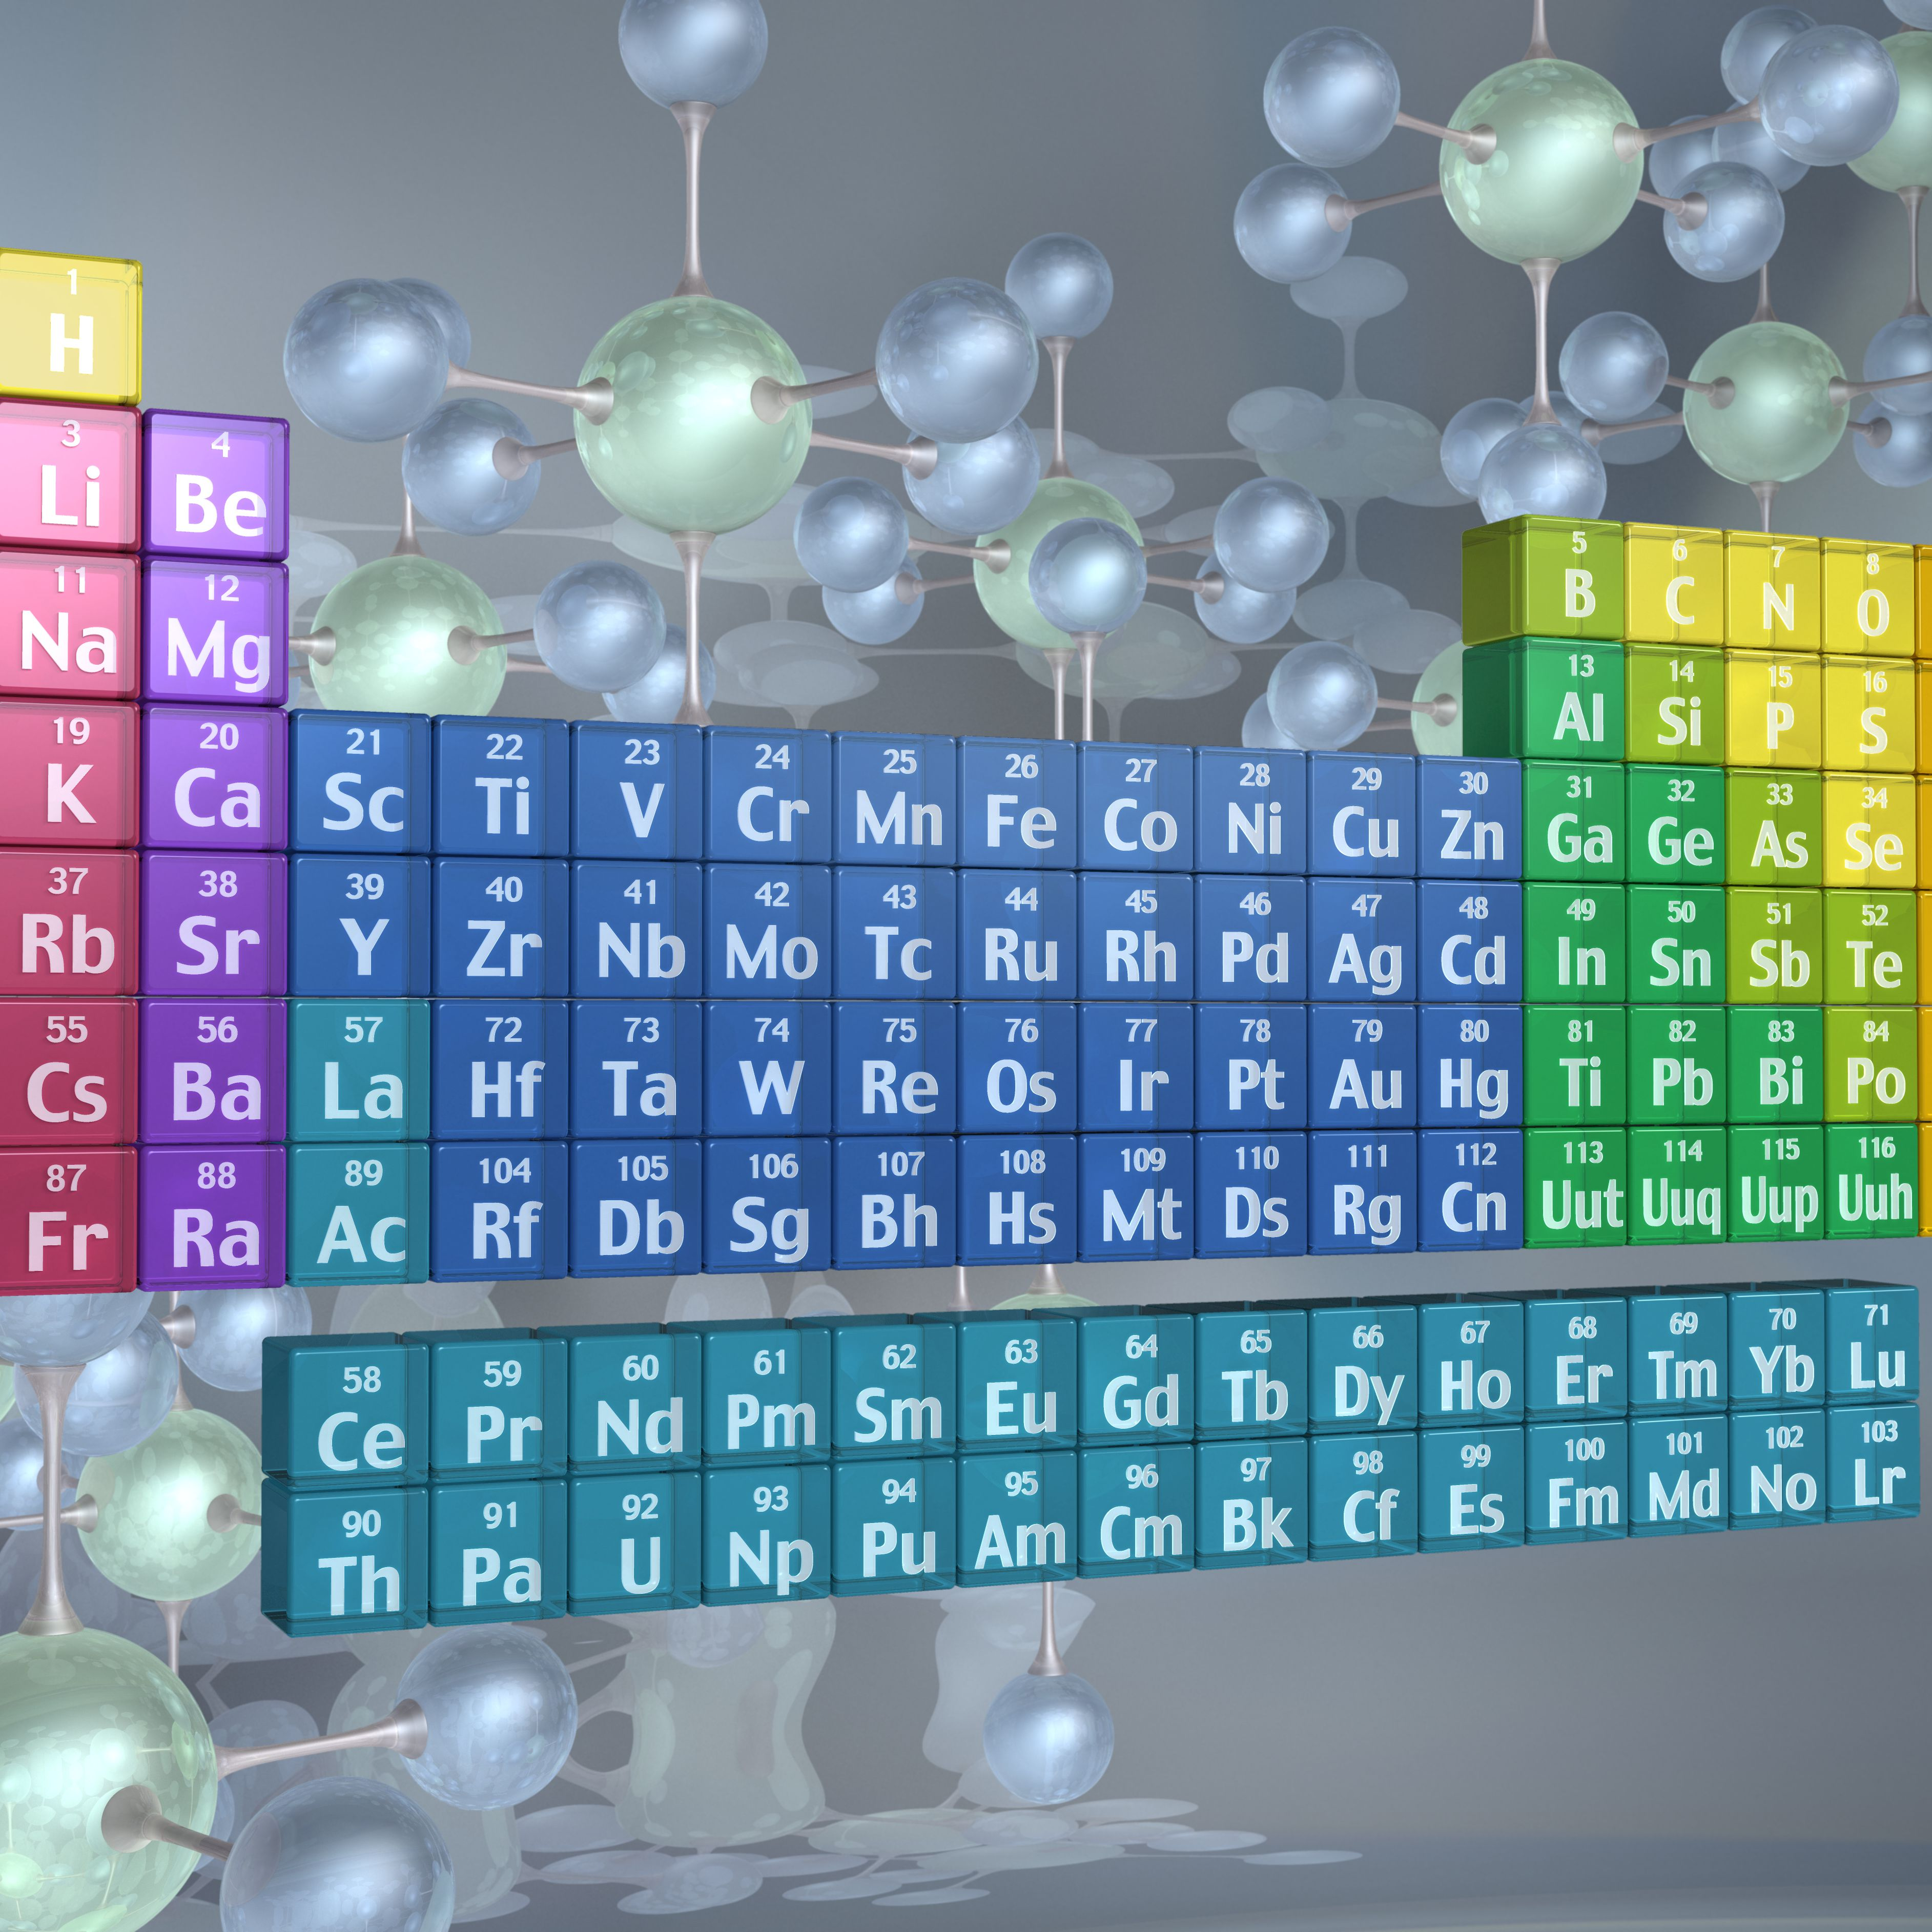 The Halogens Alkali Metals And Alkaline Earth Have How